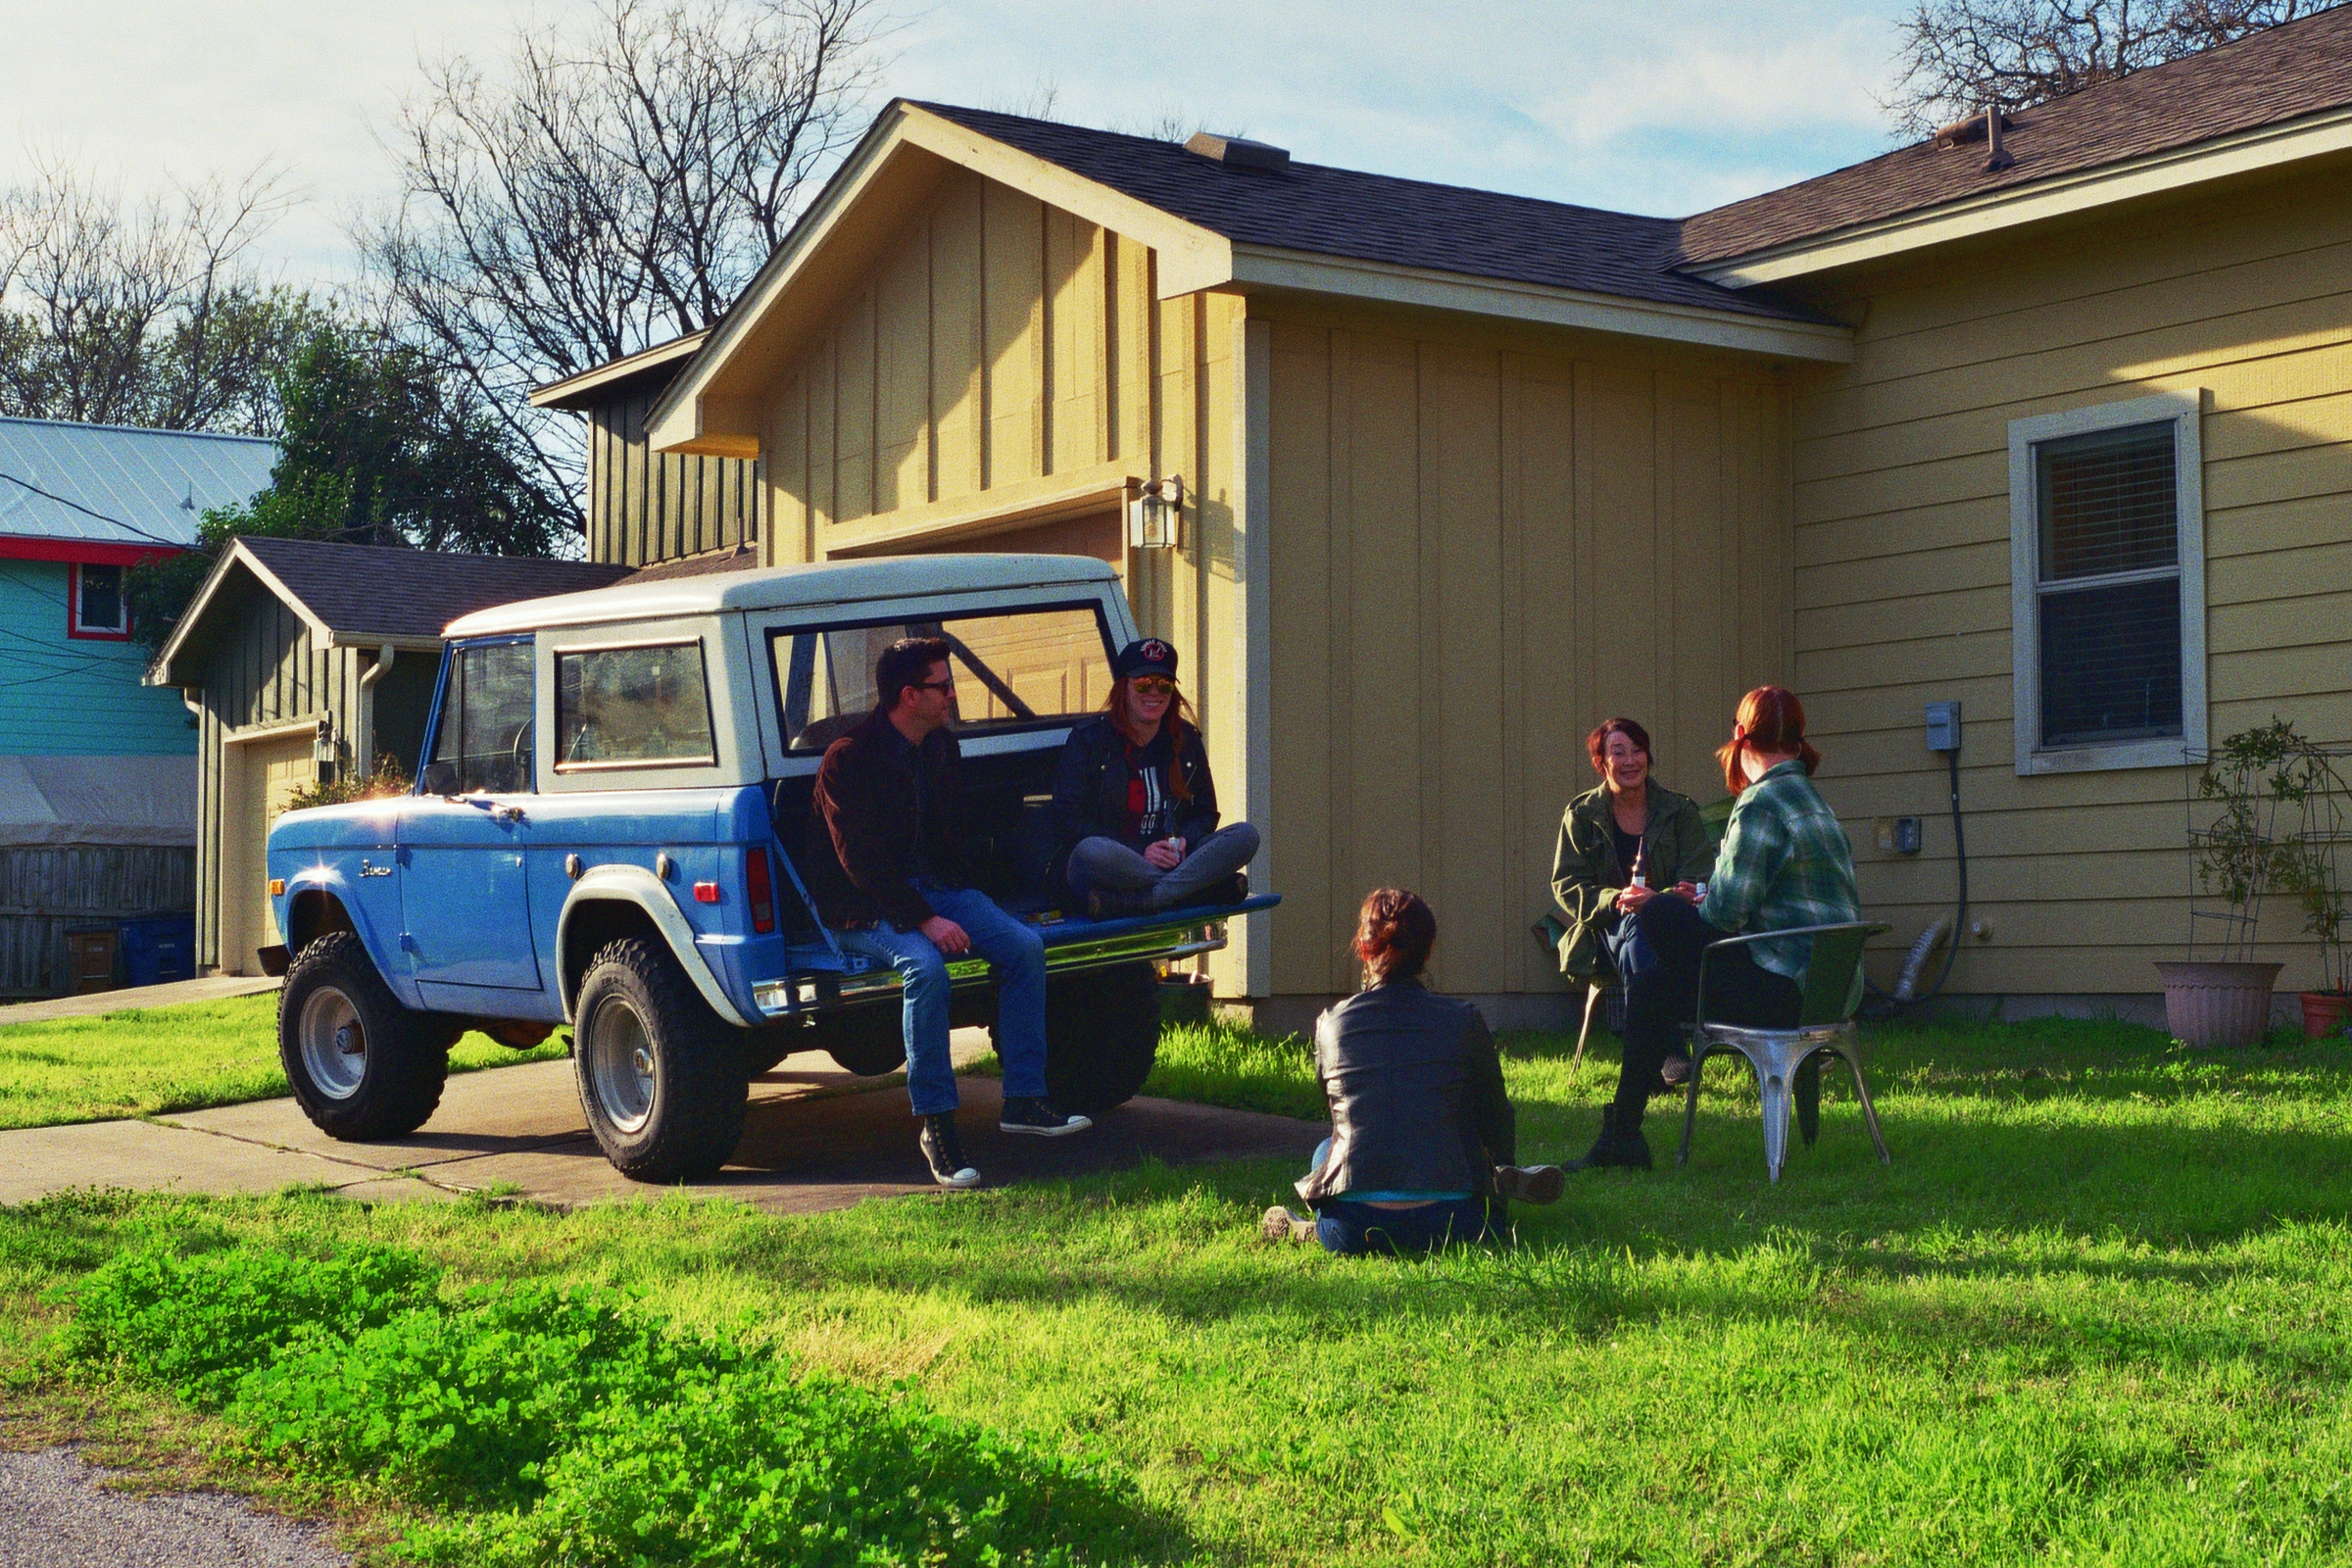 Friends drink beers in the yard over President's Day Weekend.  East Austin, TX